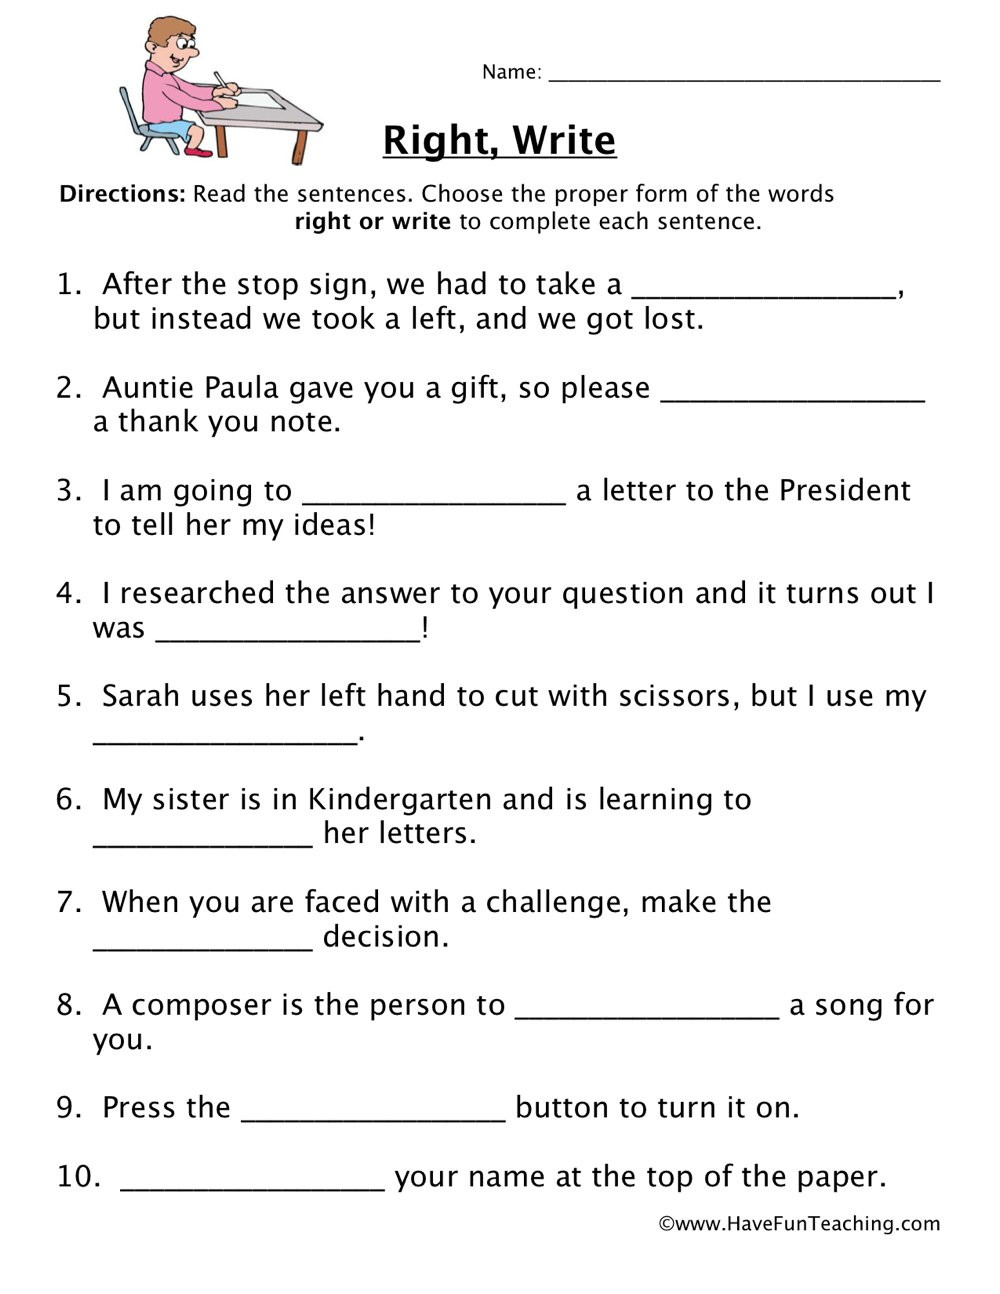 Right Write Homophones Worksheet